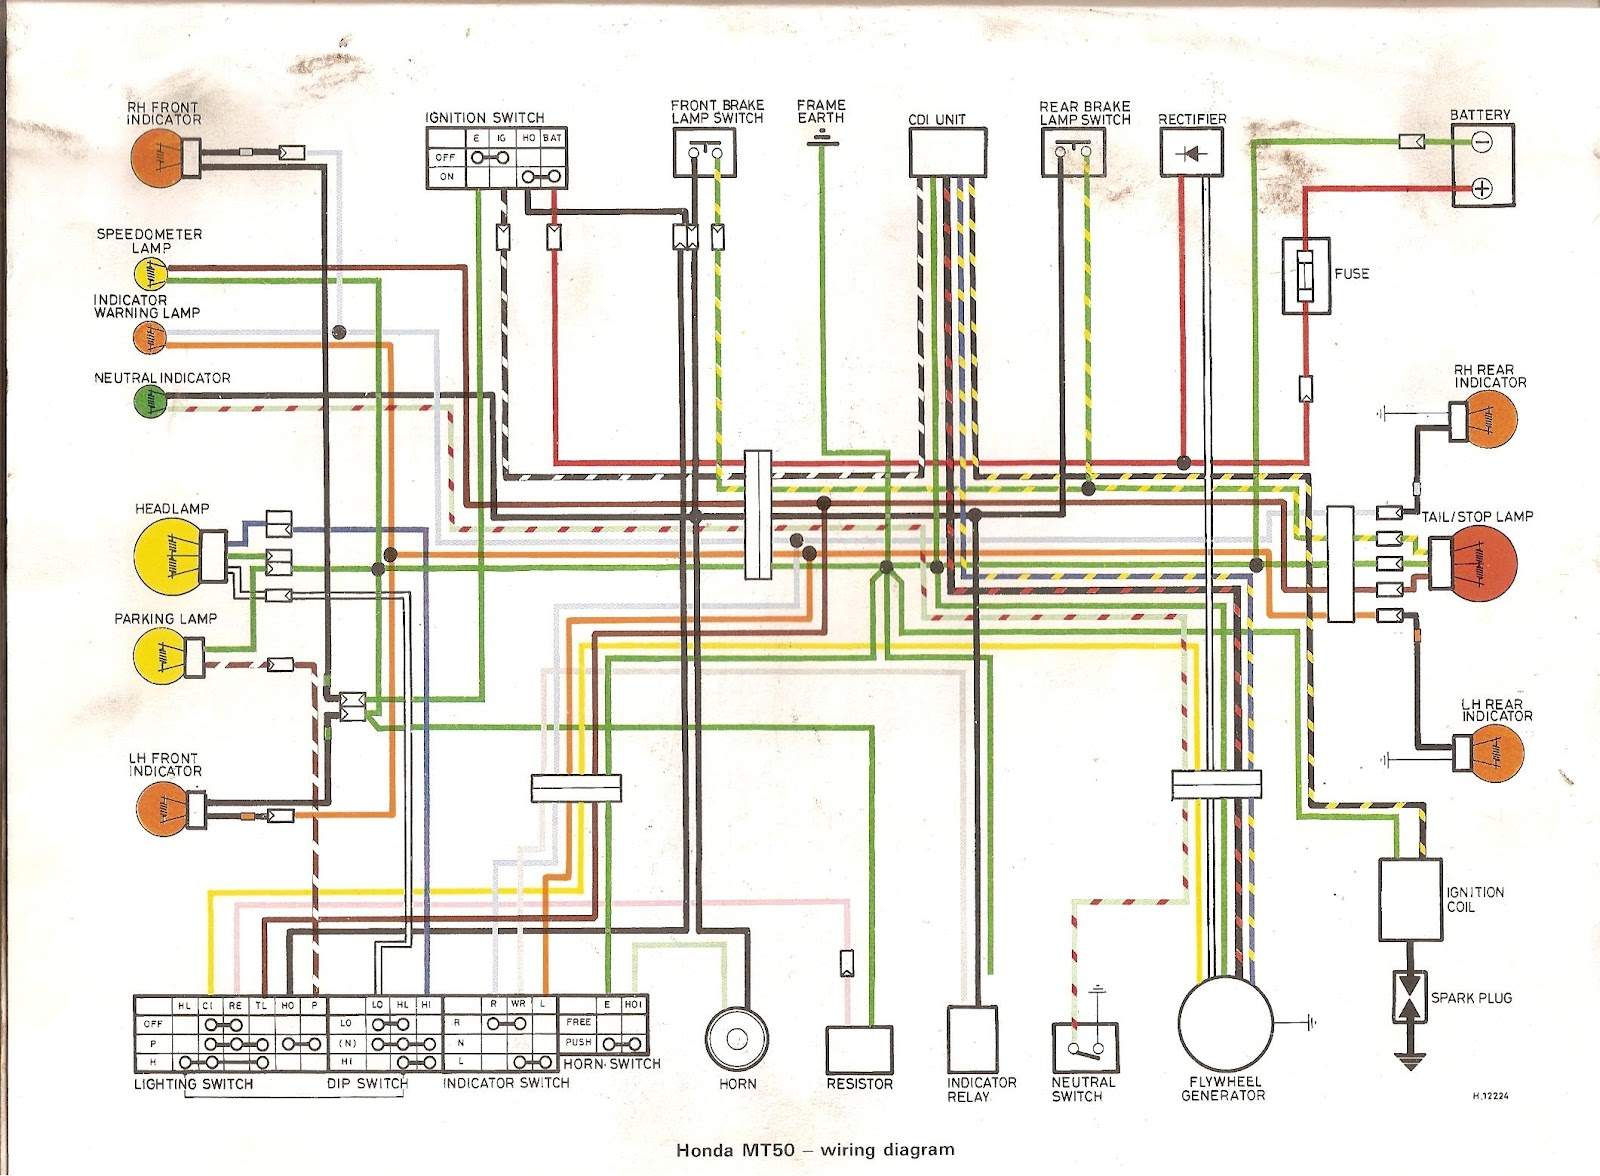 unique mtx audio thunder 6500d pattern best images for wiring rh oursweetbakeshop info 2002 Honda Odyssey Radio Wire Diagram Honda Motorcycle Wiring Color Codes